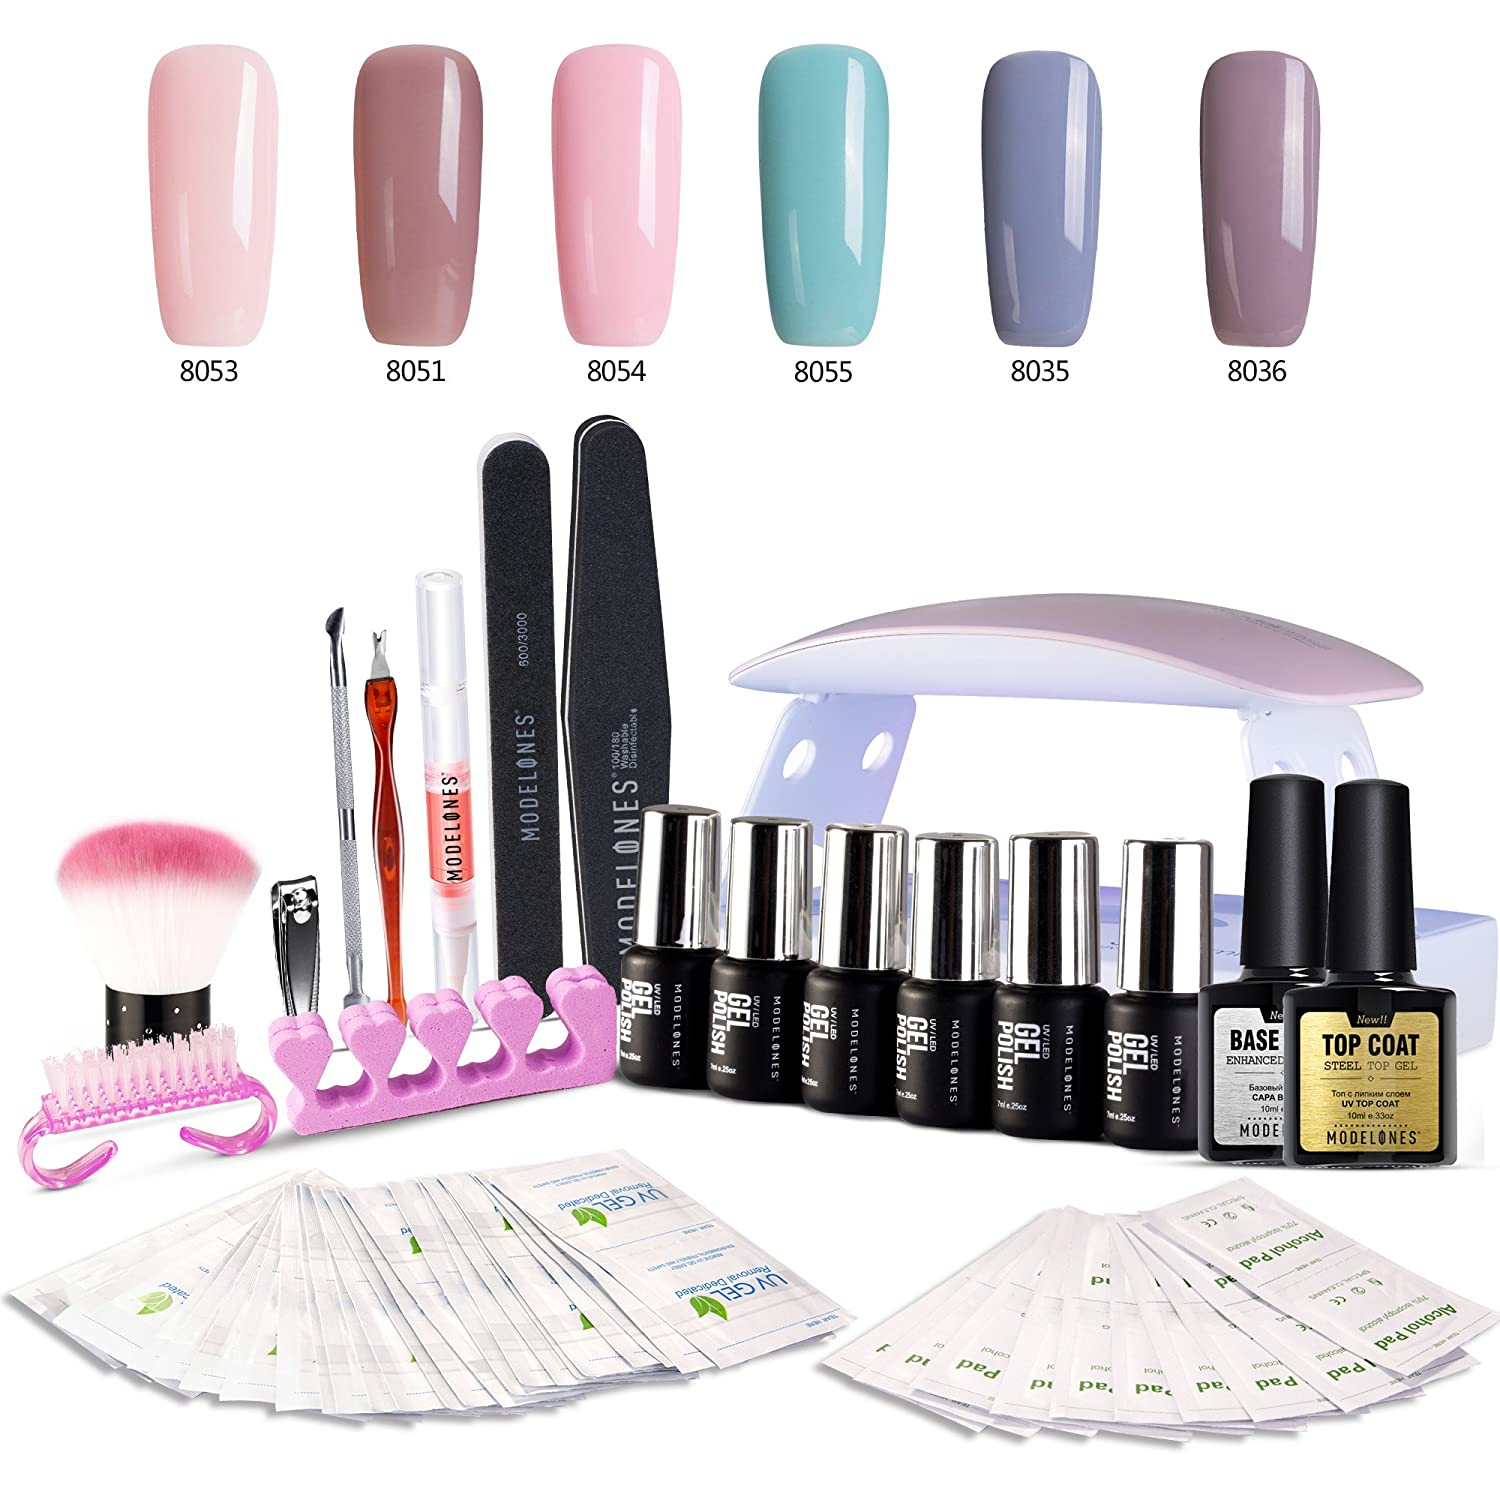 Modelones Gel Nail Polish Starter Kit with 6W LED Lamp Base Top Coat 6 Gels in Tiny Bottles Portable Nail Gel Kit for Travel